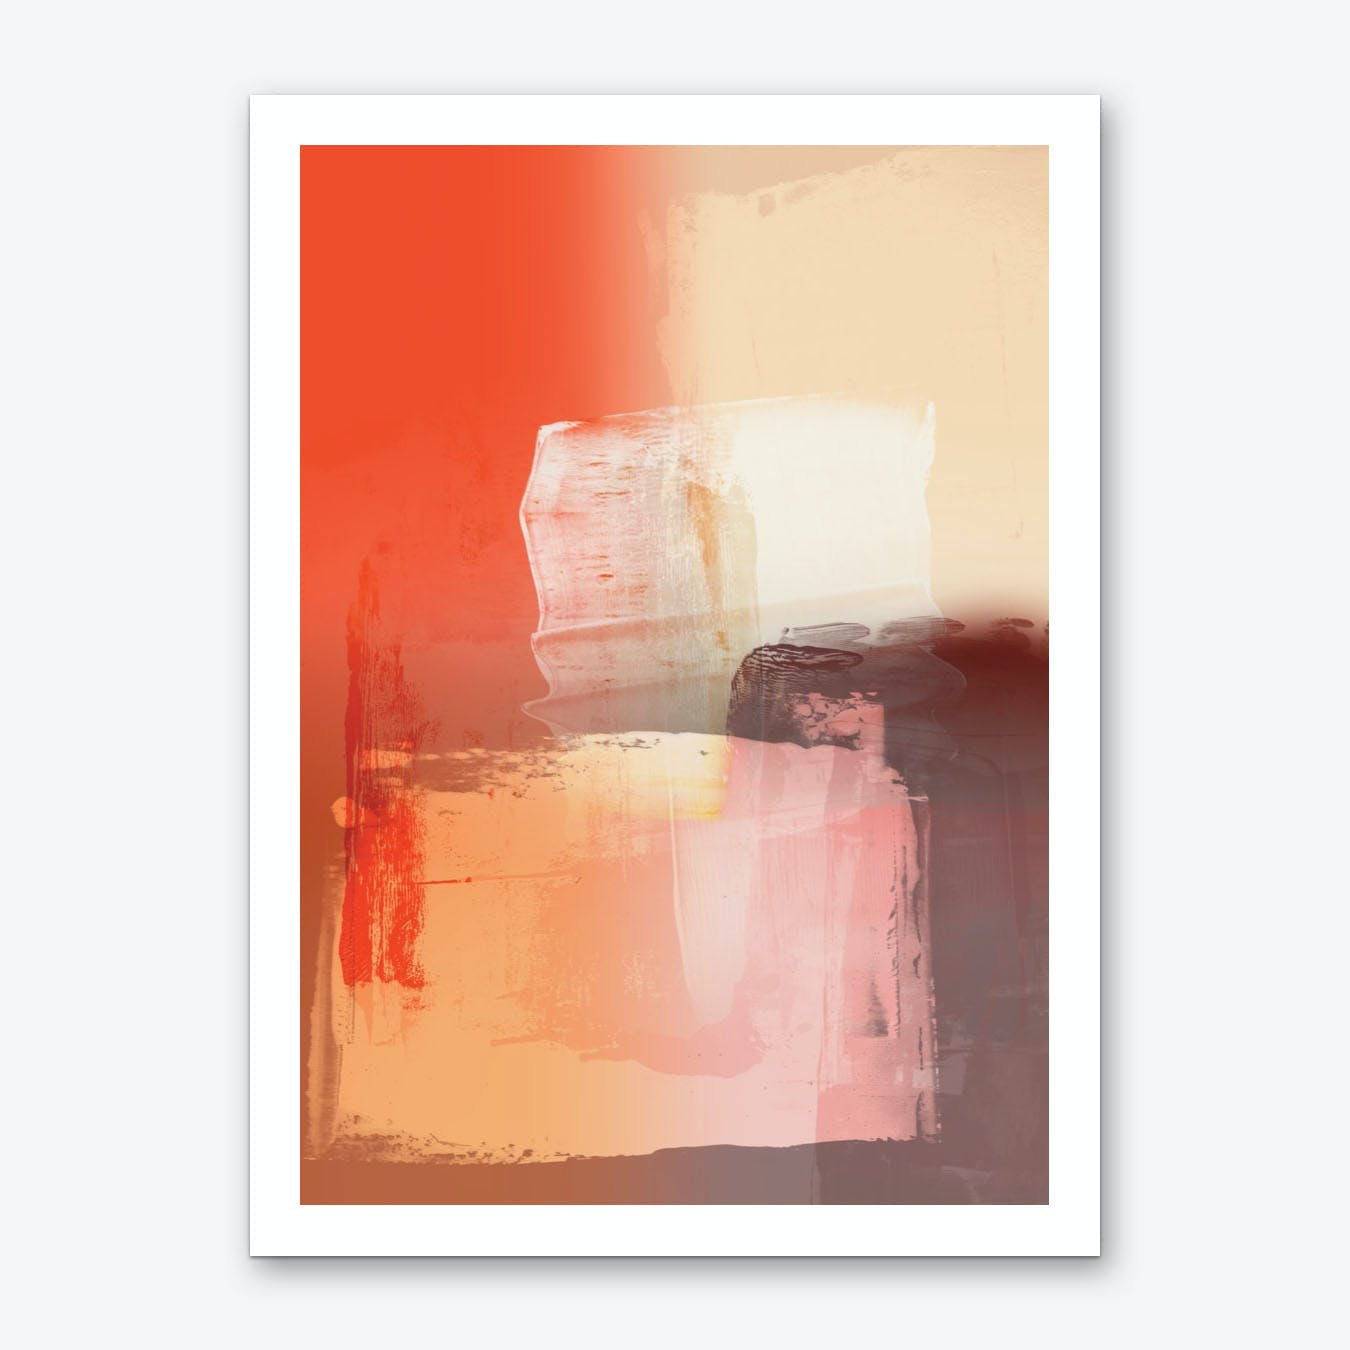 Abstract Brushmarks Orange Pinks Art Print